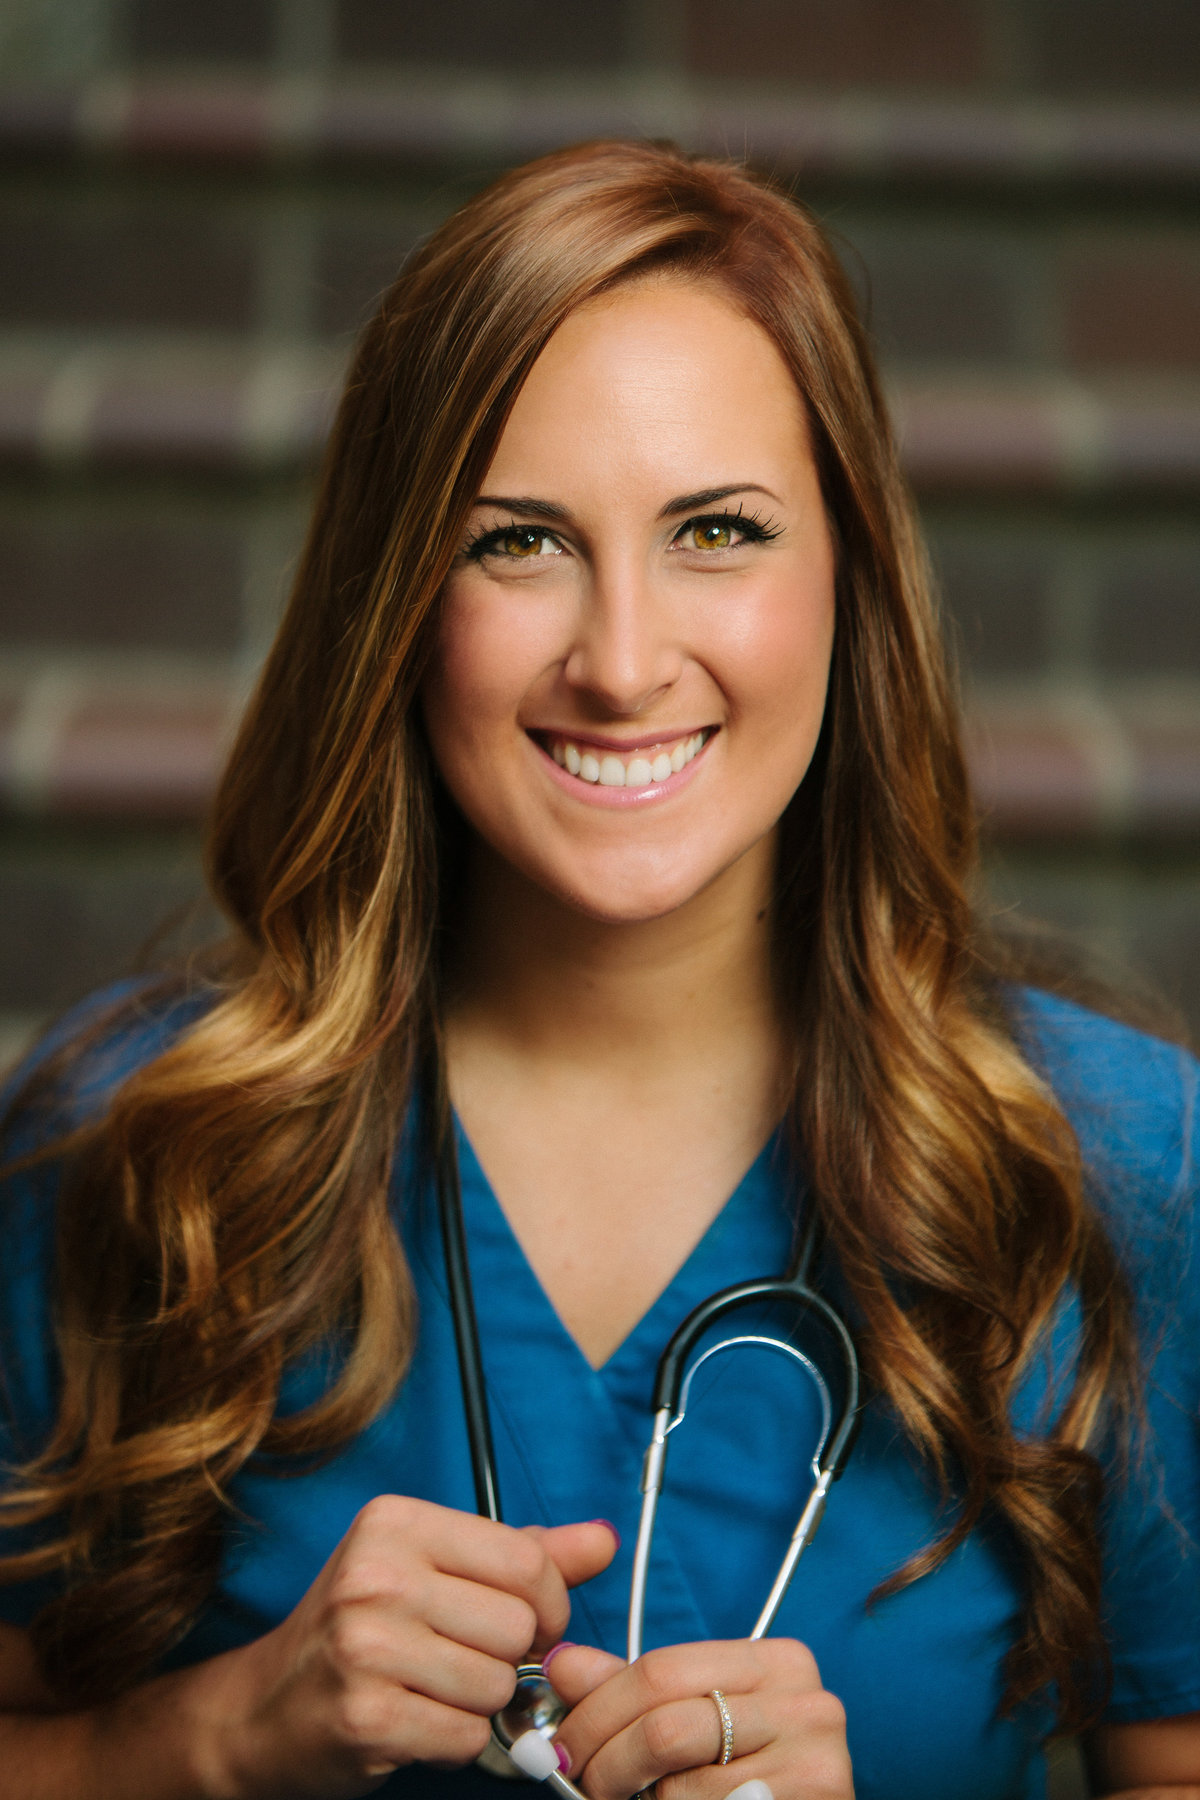 Corporate nurse headshot photo